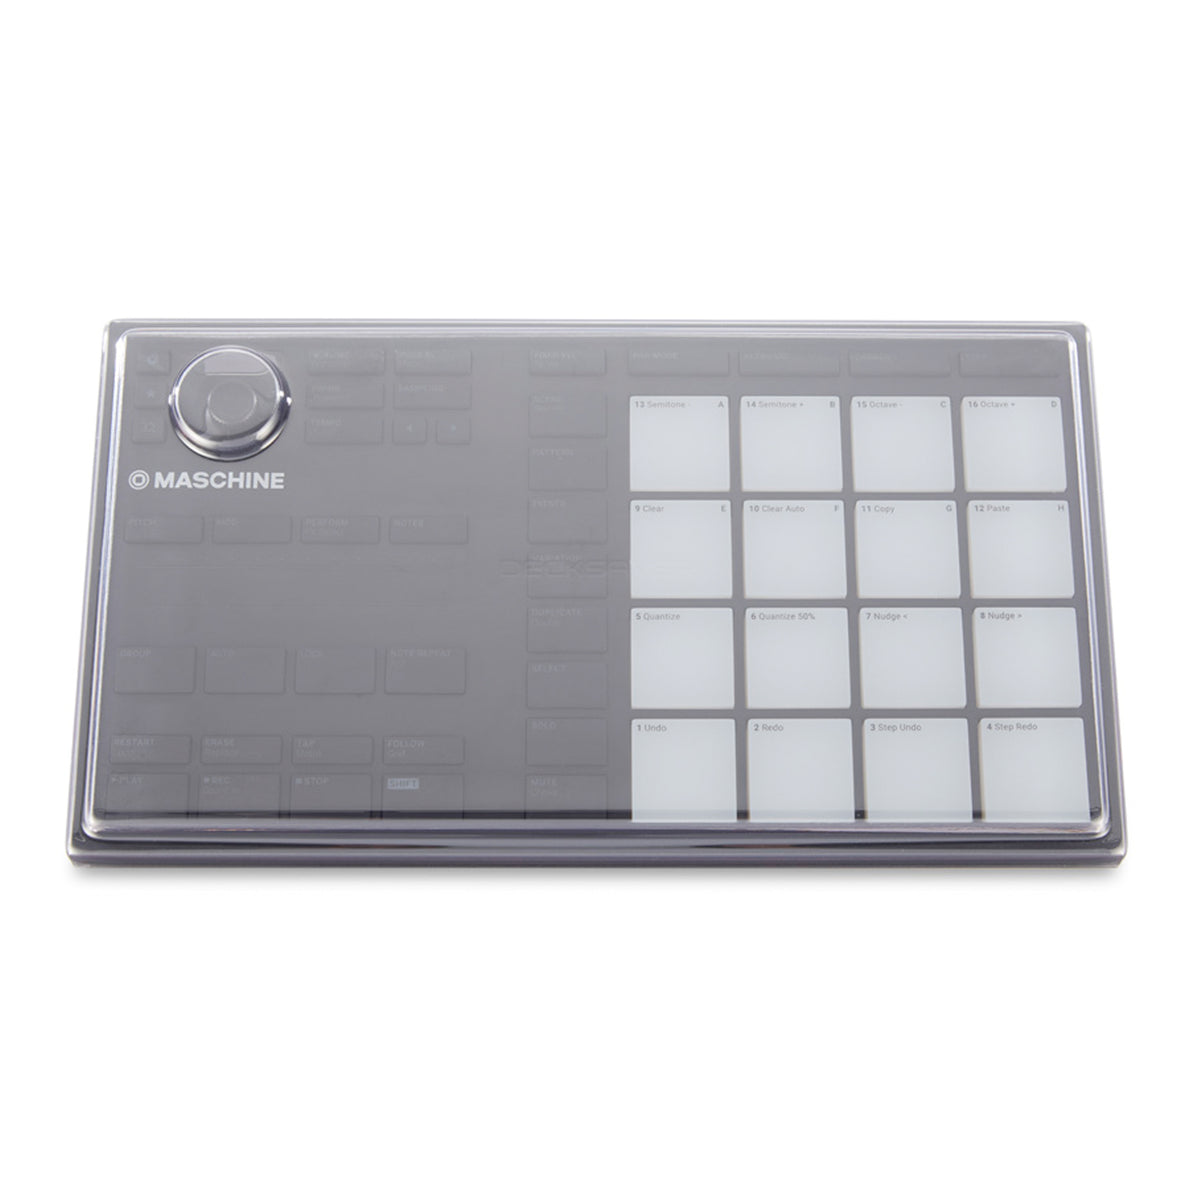 Decksaver: Polycarbonate Dustcover For Native Instruments Maschine Mikro MK3 (DS-PC-MIKROMK3)